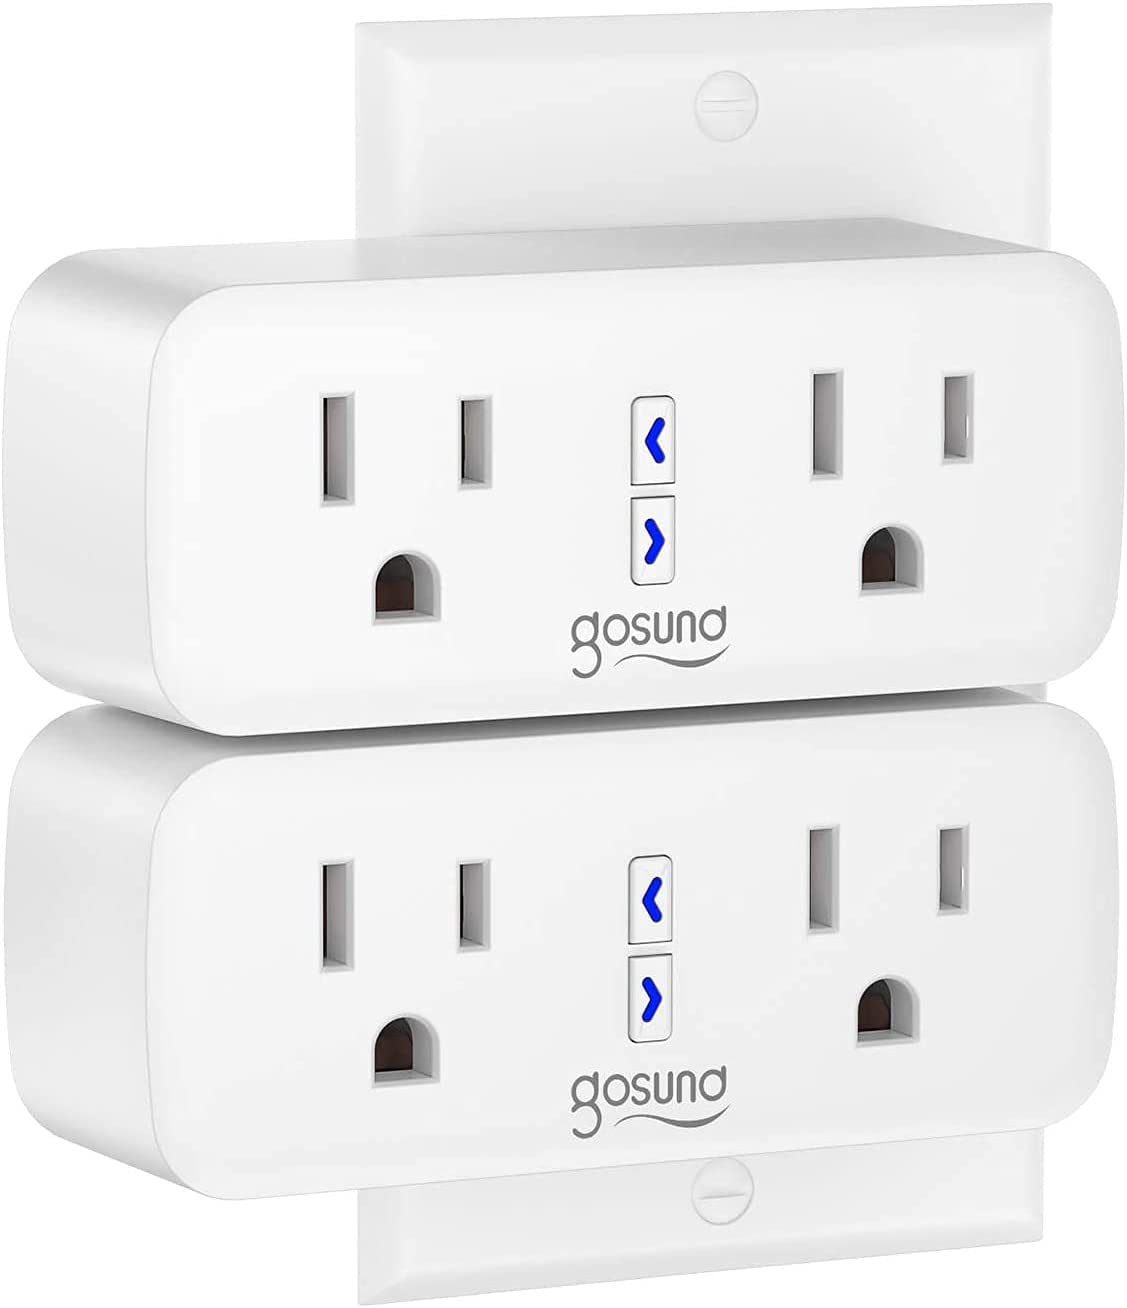 Smart Plug,Dual Plugs WiFi Outlet Smart Socket Work with Alexa, Google Home, Extenders, Timer, Control Independently or Together, 10A, No Hub Required, FCC Listed (2 Pack)